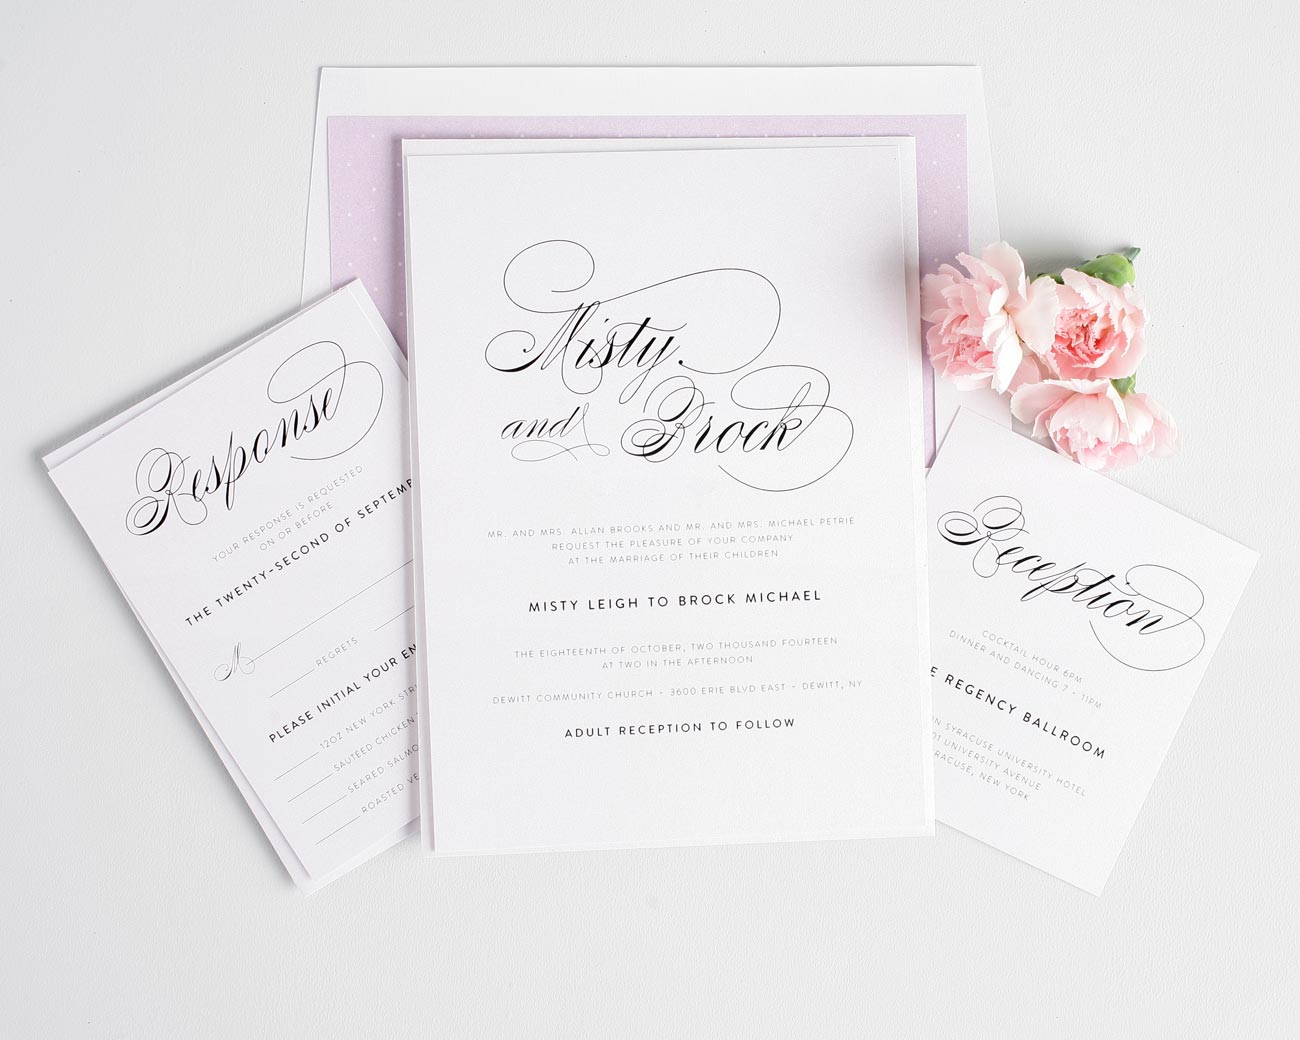 Elegant wedding invitations with a polka dot envelope liner